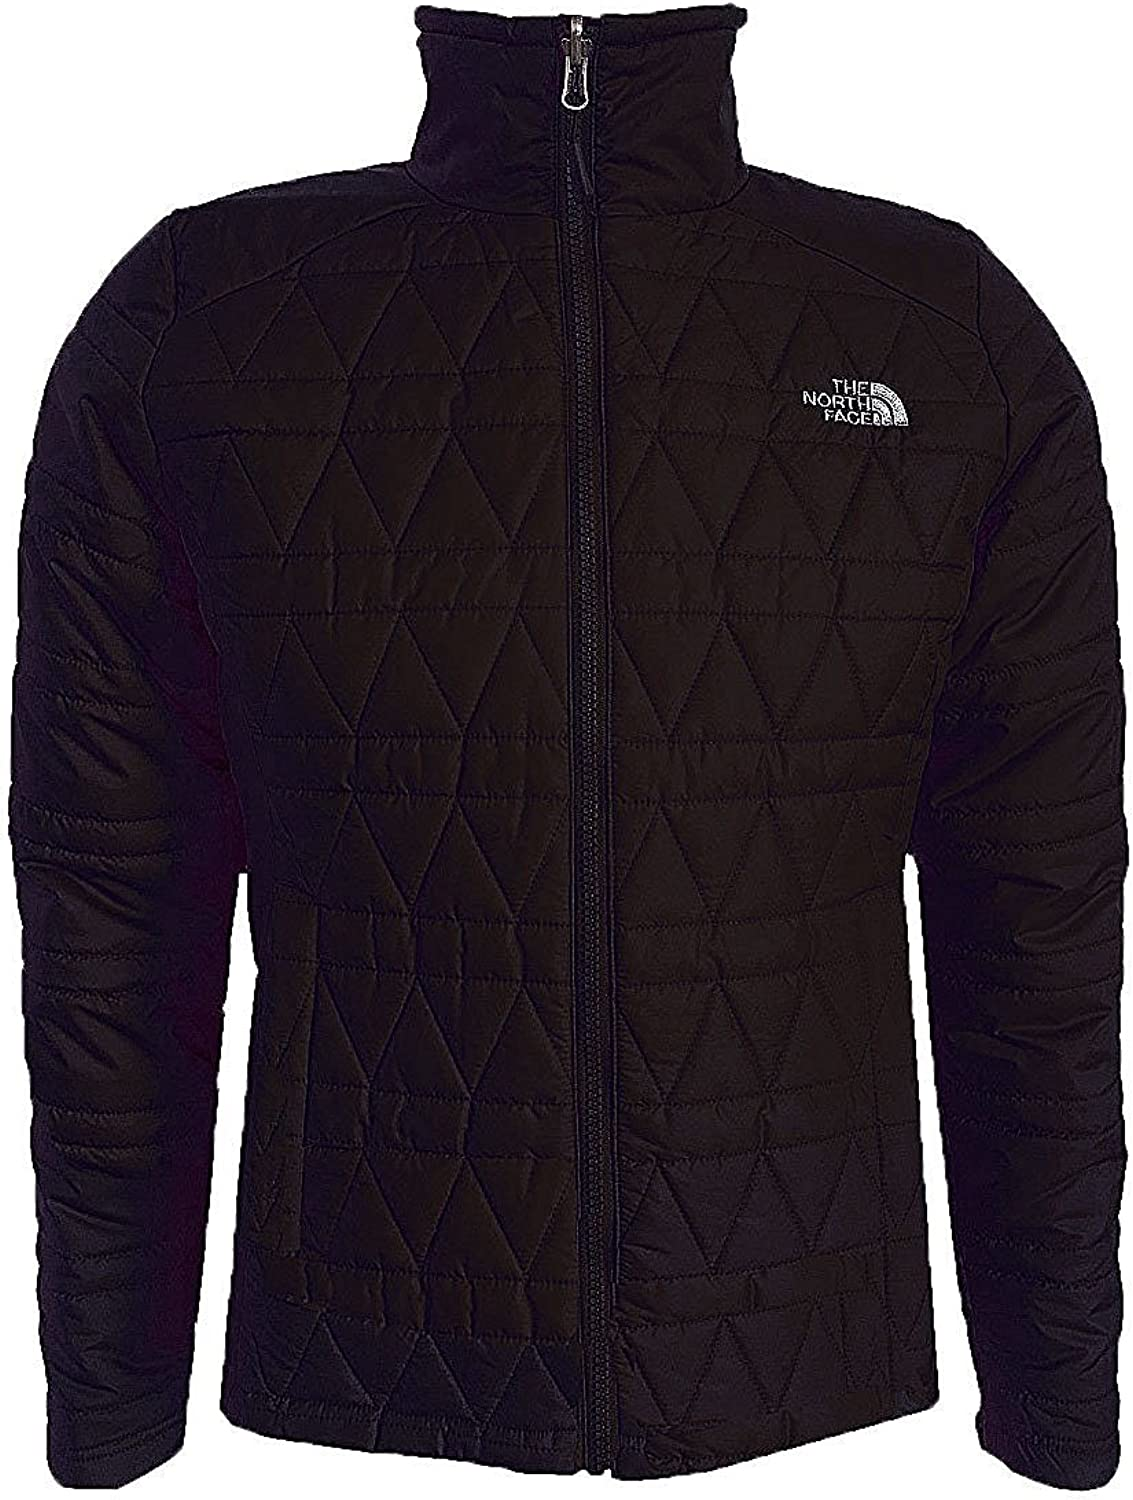 The North Face Womens DANI Insulated Jacket Black Medium